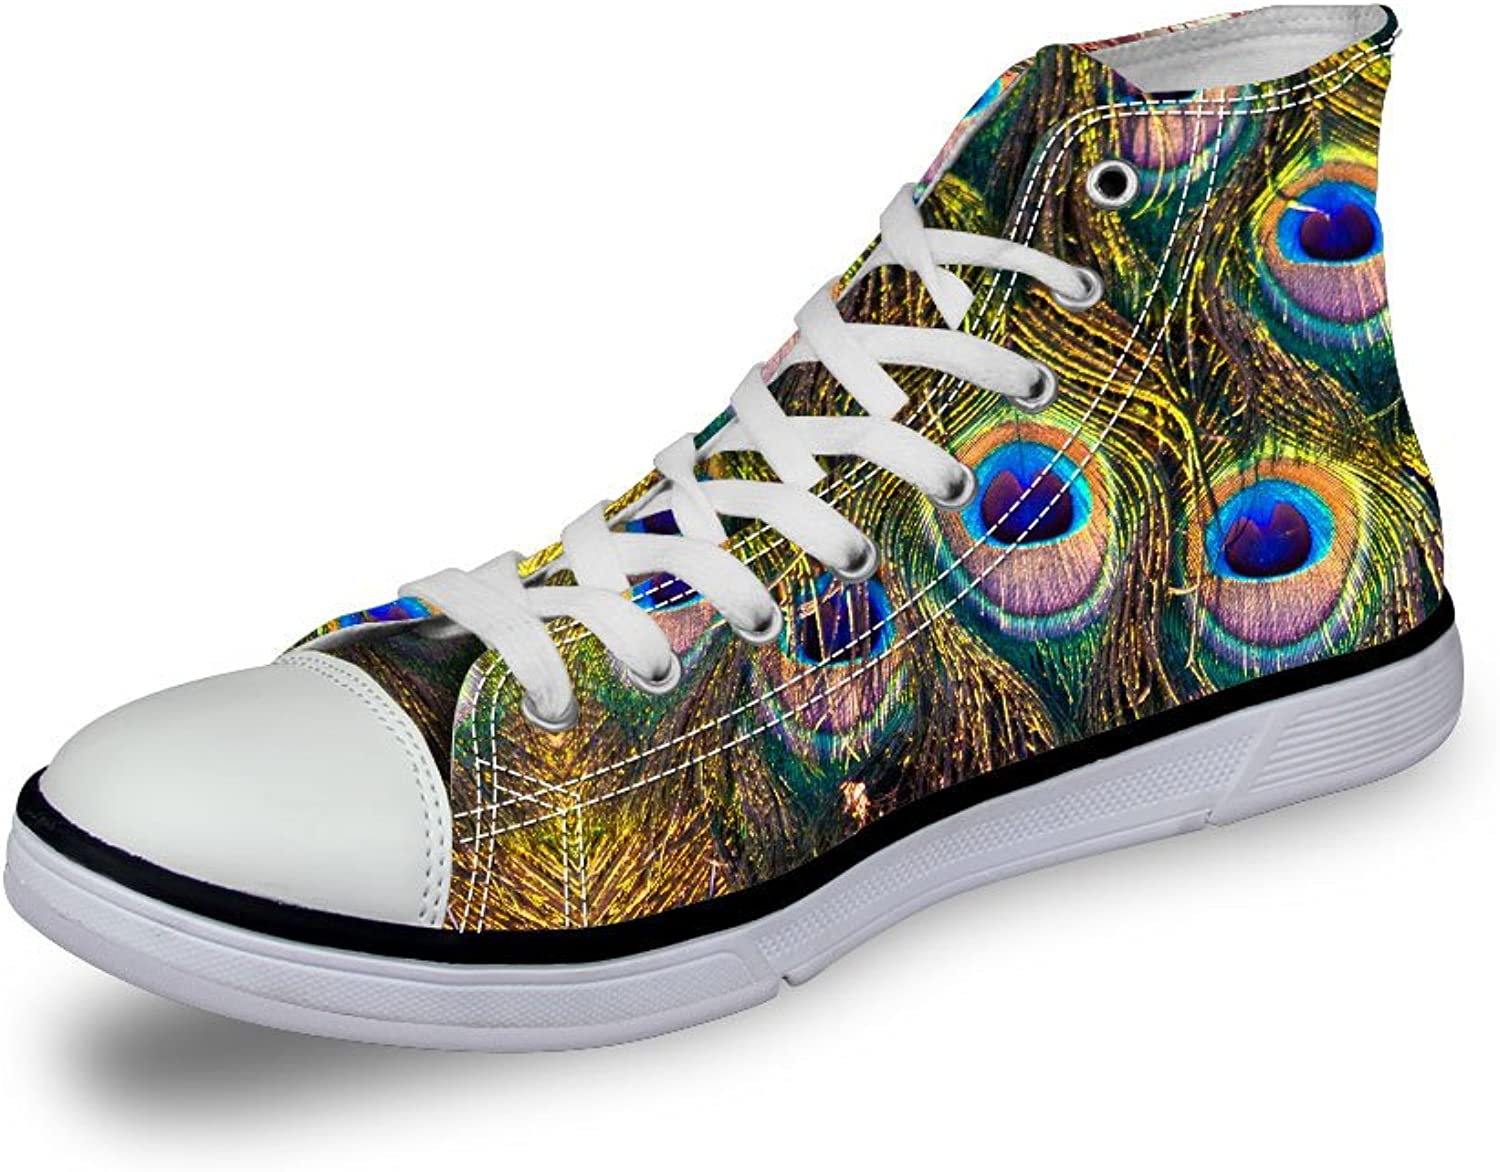 EnlaMorea Fashion Unisex 3D Peacock Feather Print Walking shoes High Top Canvas Sneakers,